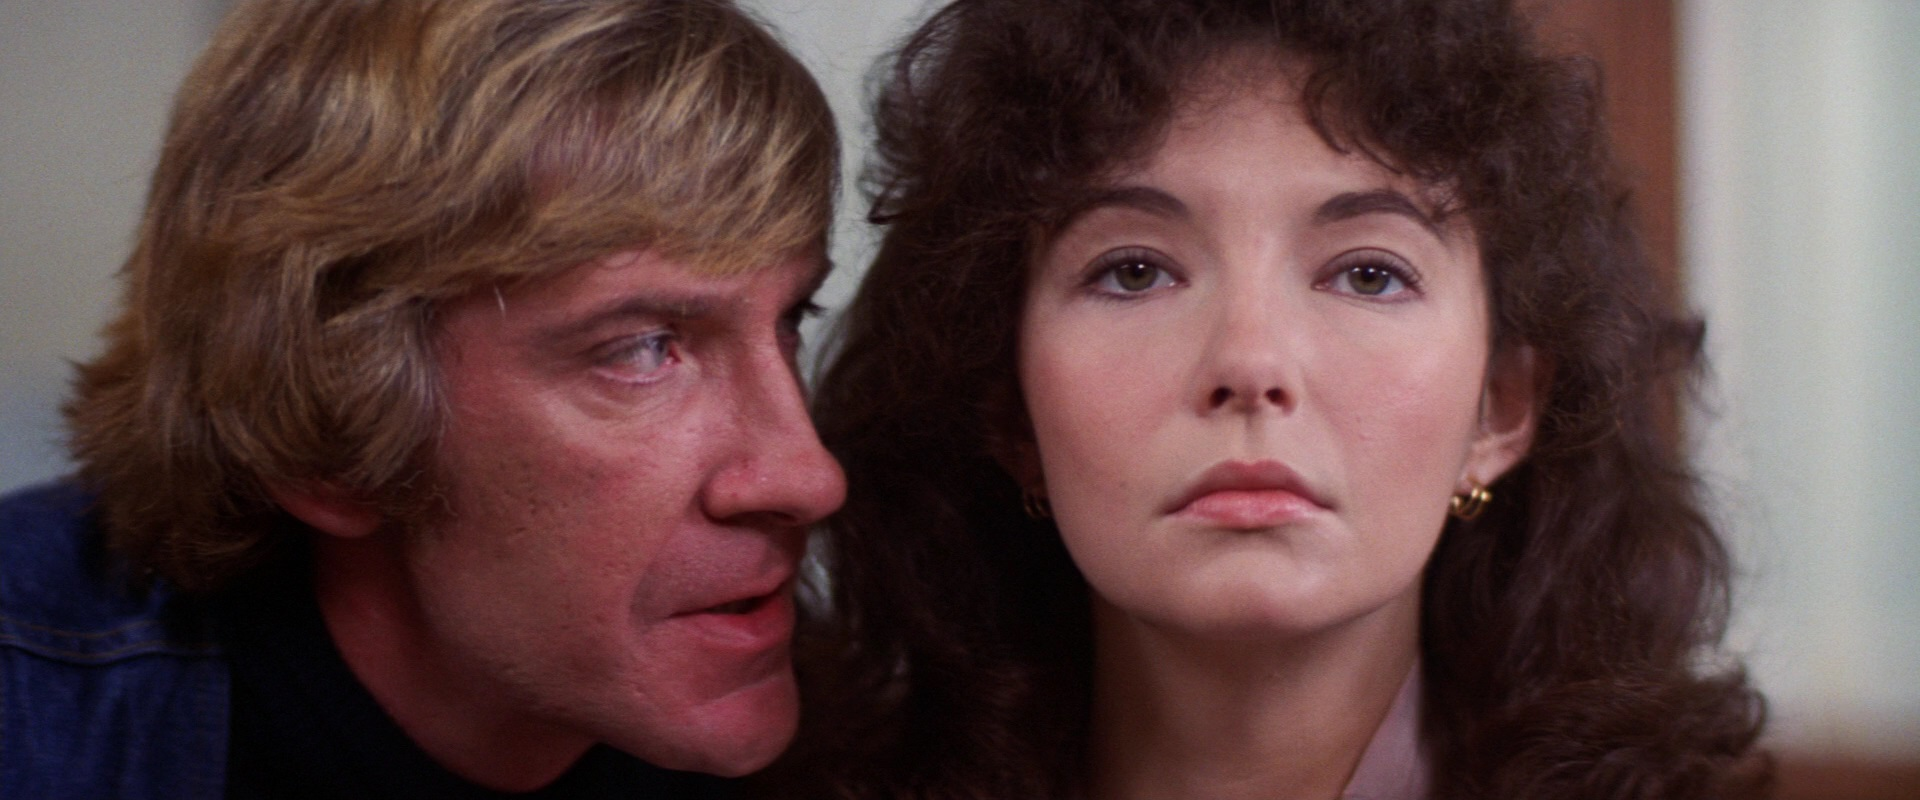 David Warner menaces Mary Steenburgen in Time After Time (1979)